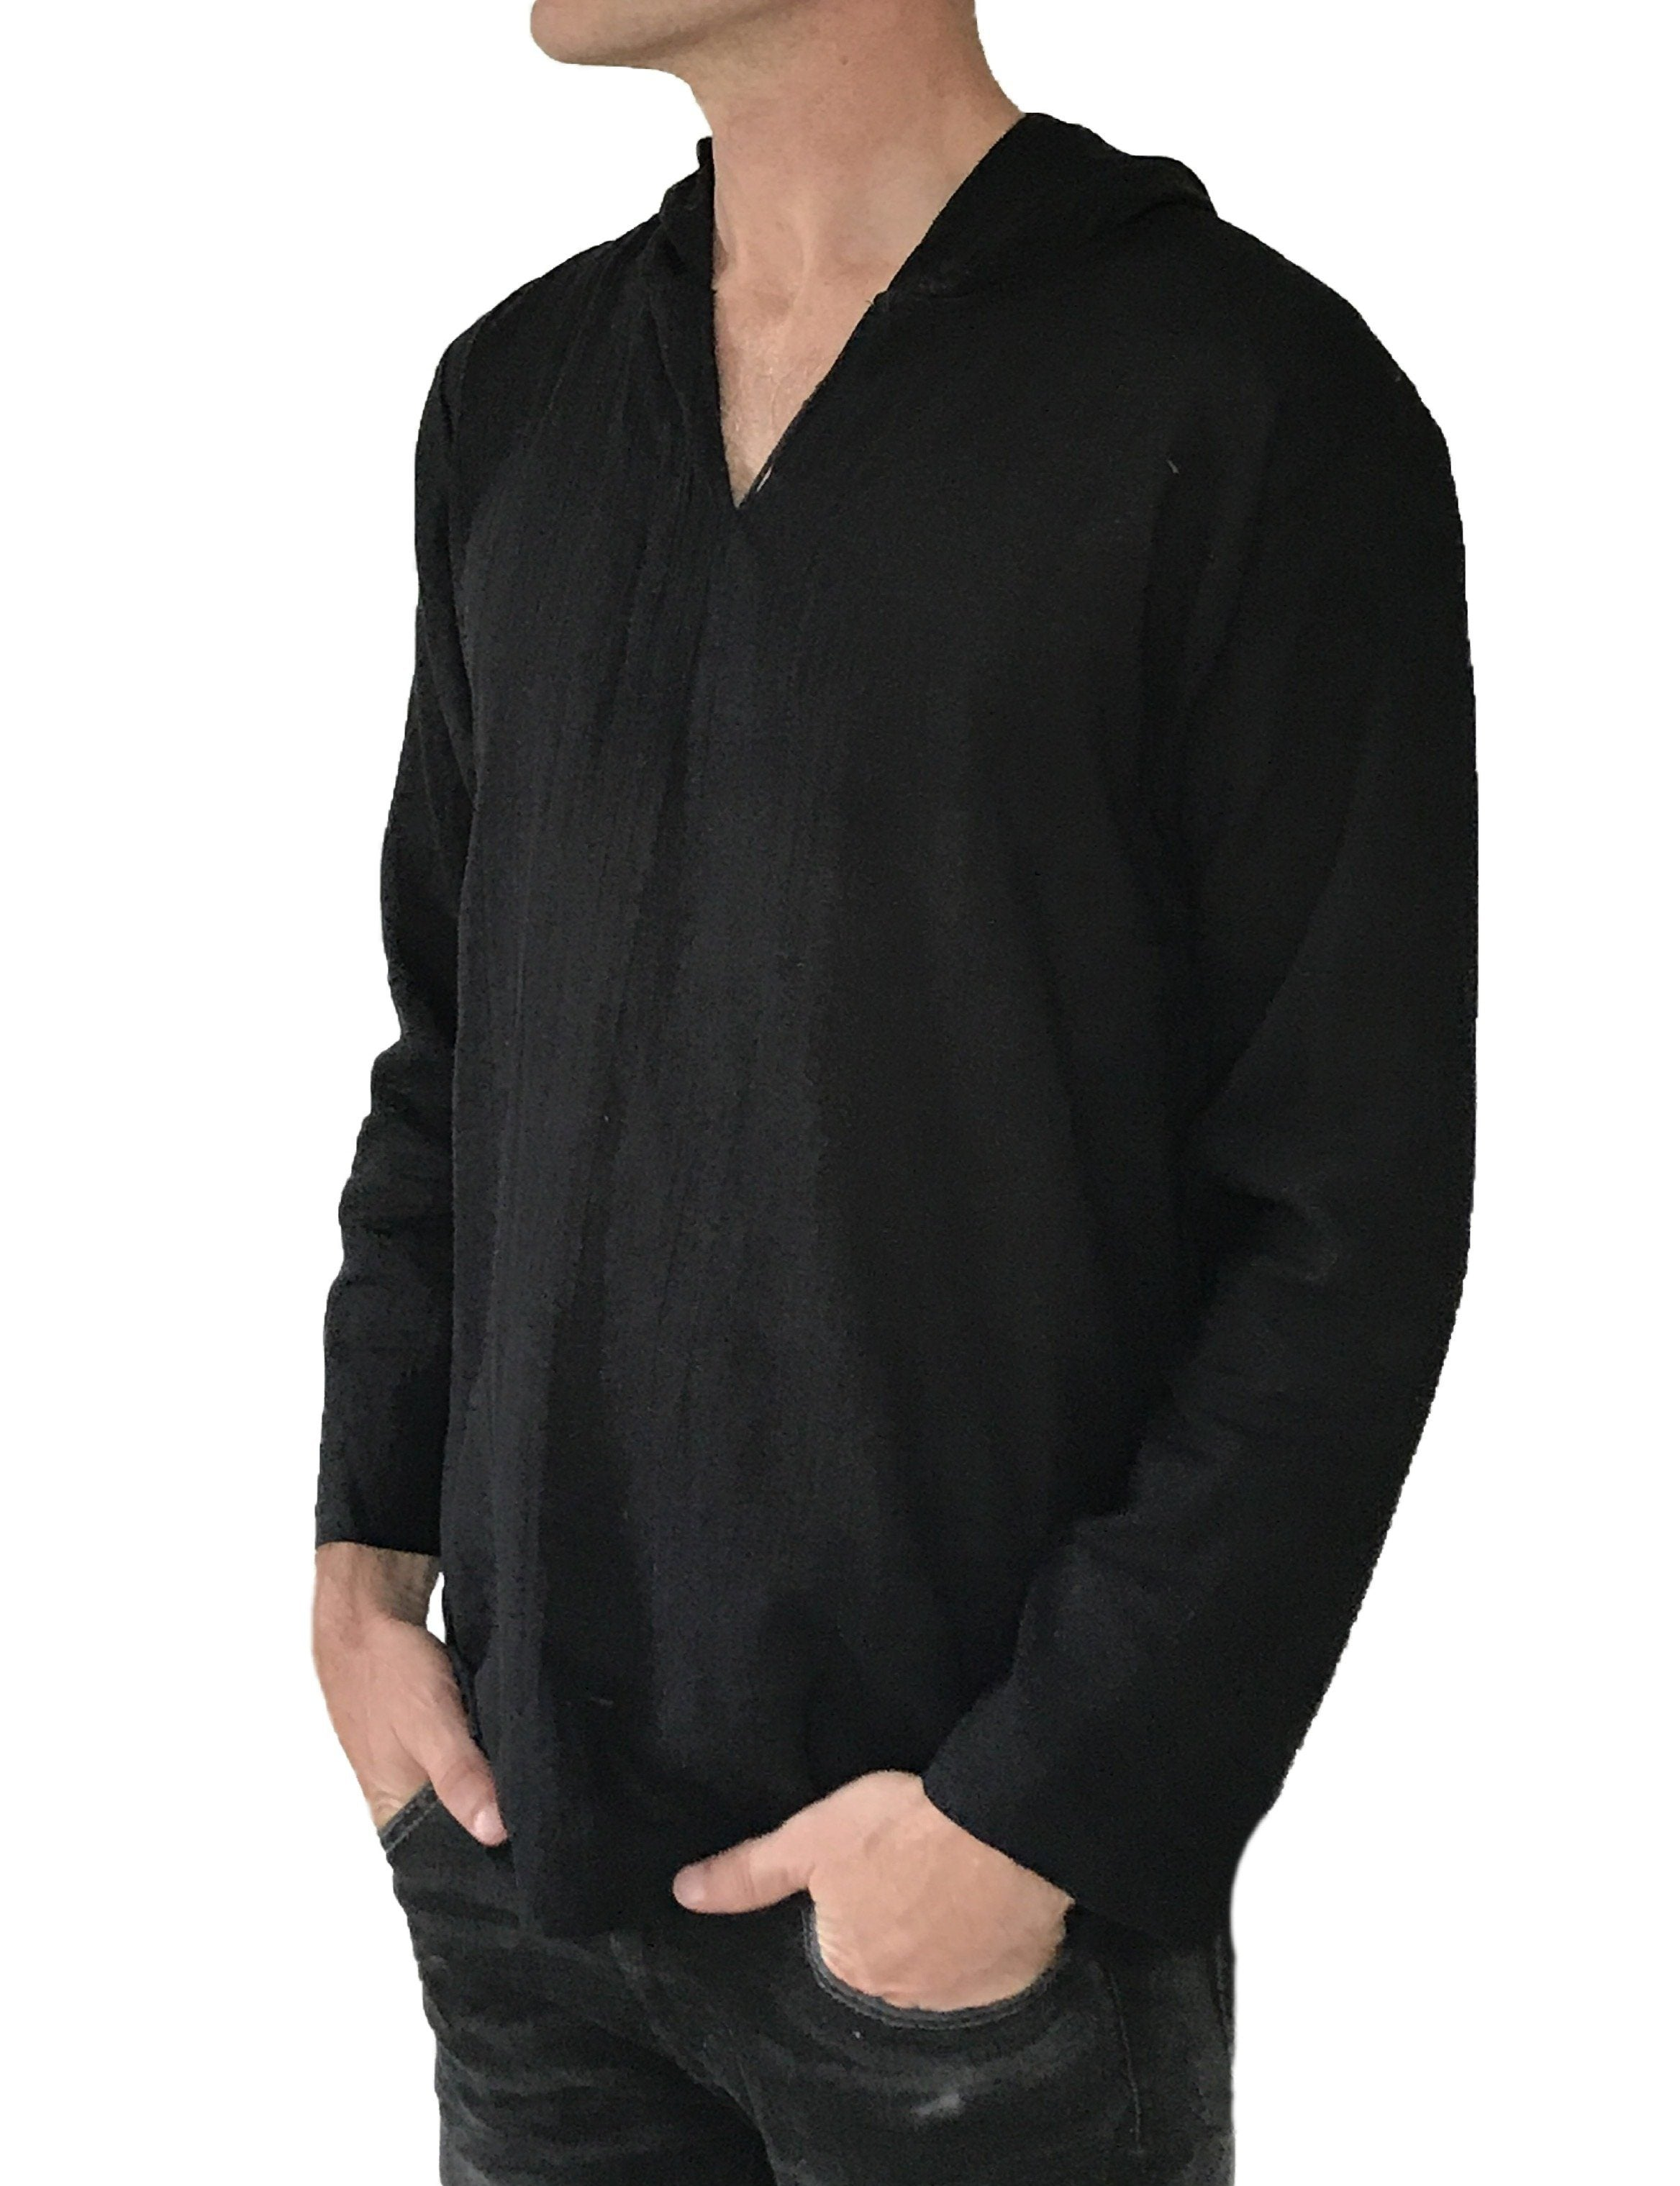 Shirt - Men's Cotton Hoodie Shirt